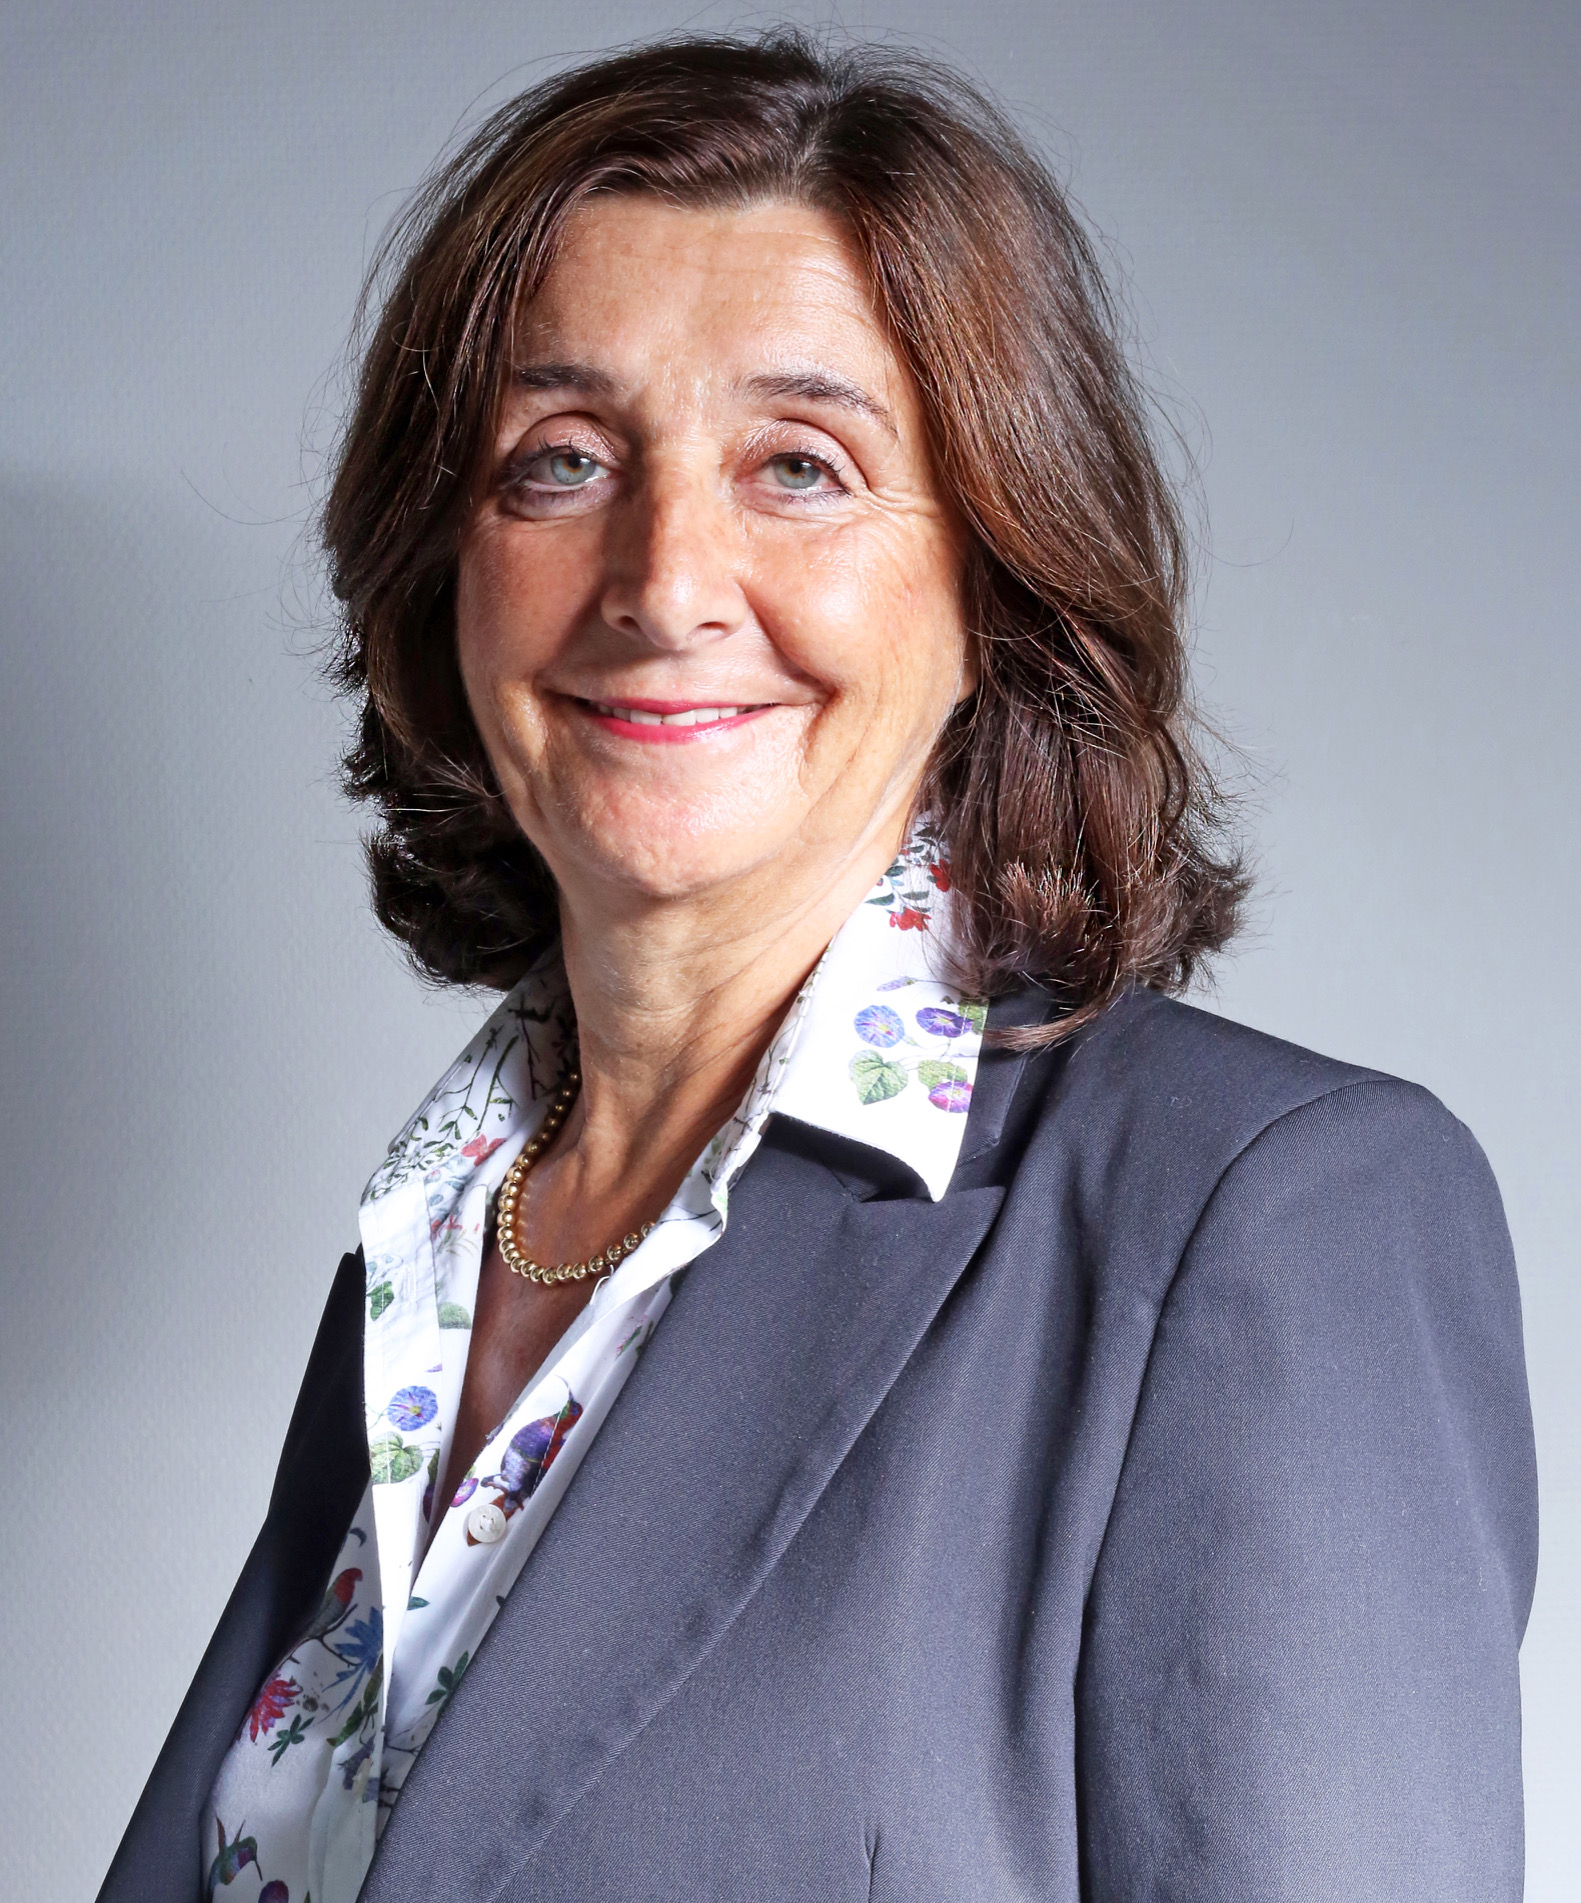 Michèle Canellas